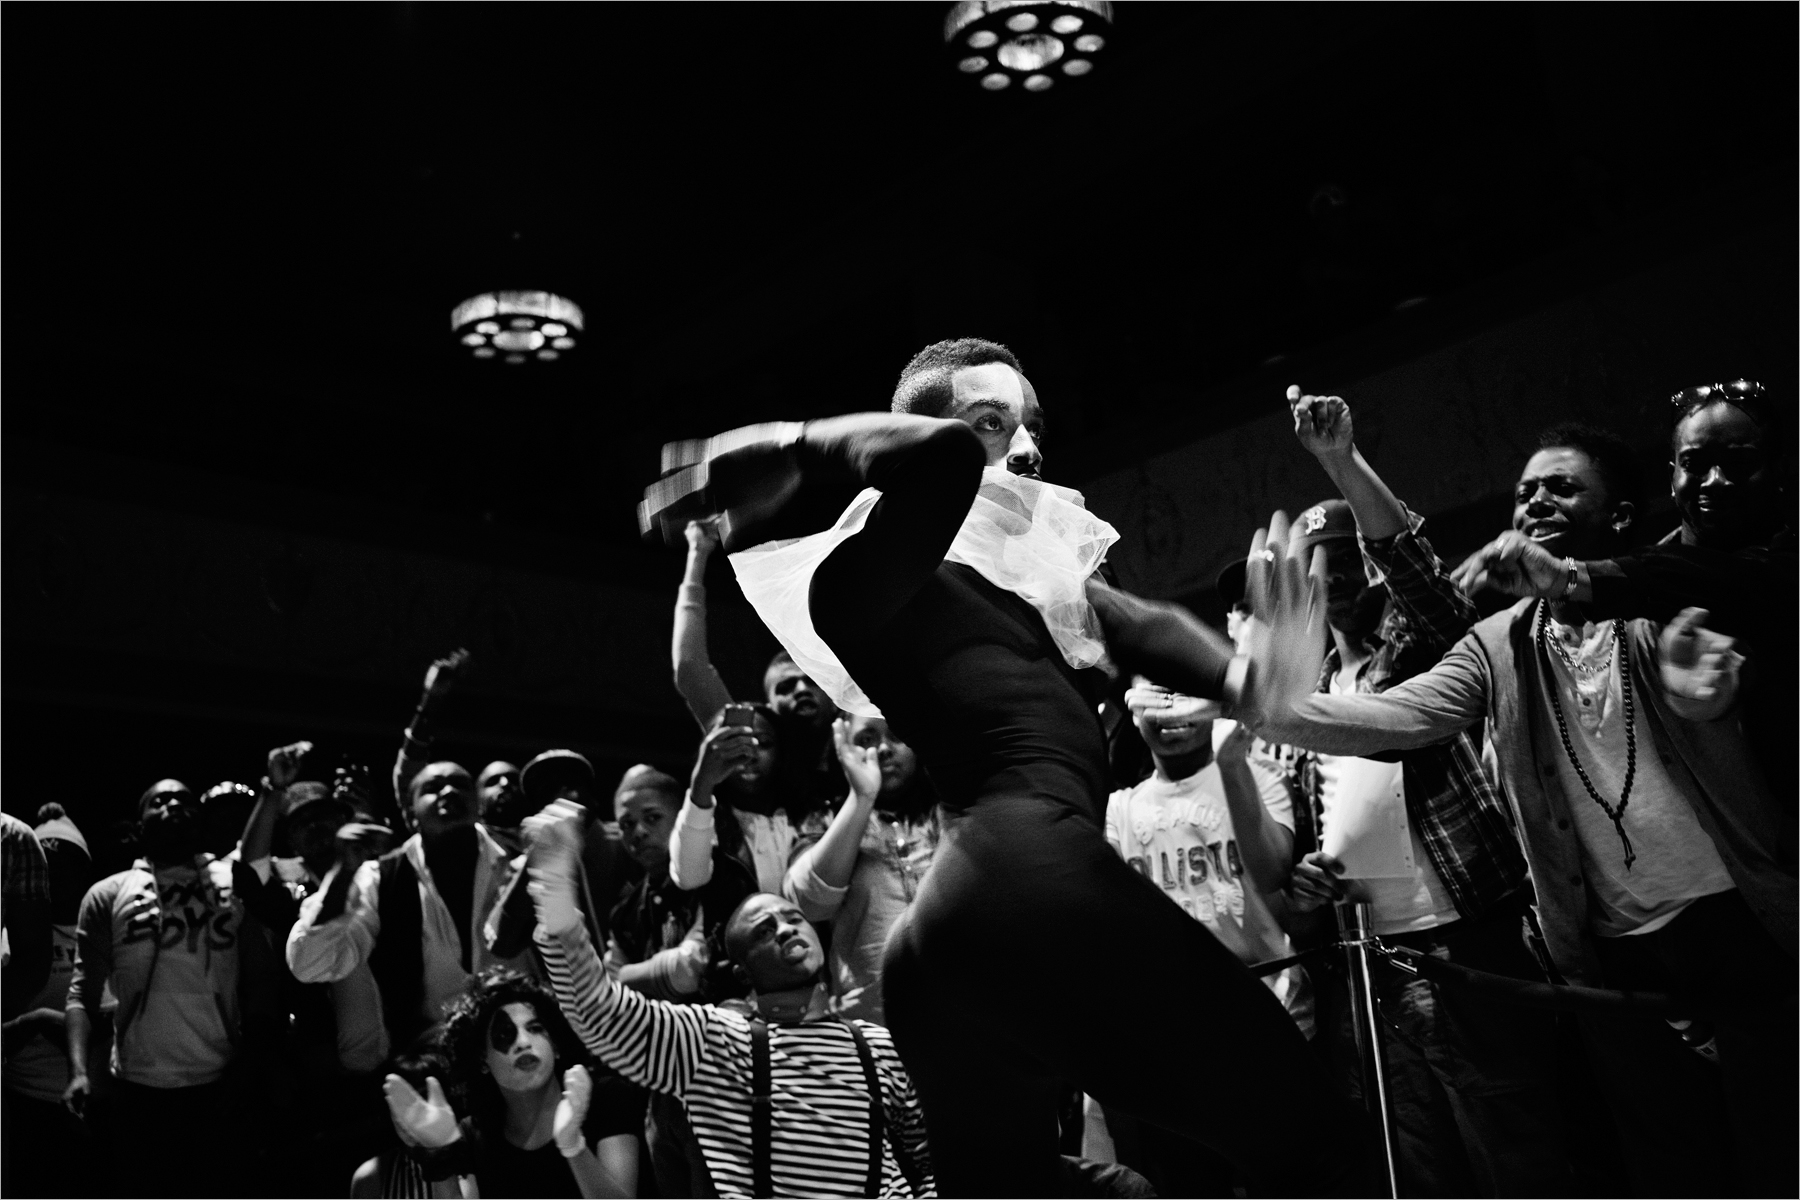 Still from {quote}The Last Battle{quote}, an evolving project that documents New York City's Kiki Ballroom community. Photo by Samantha Box 2010 - 2012 © Samantha Box